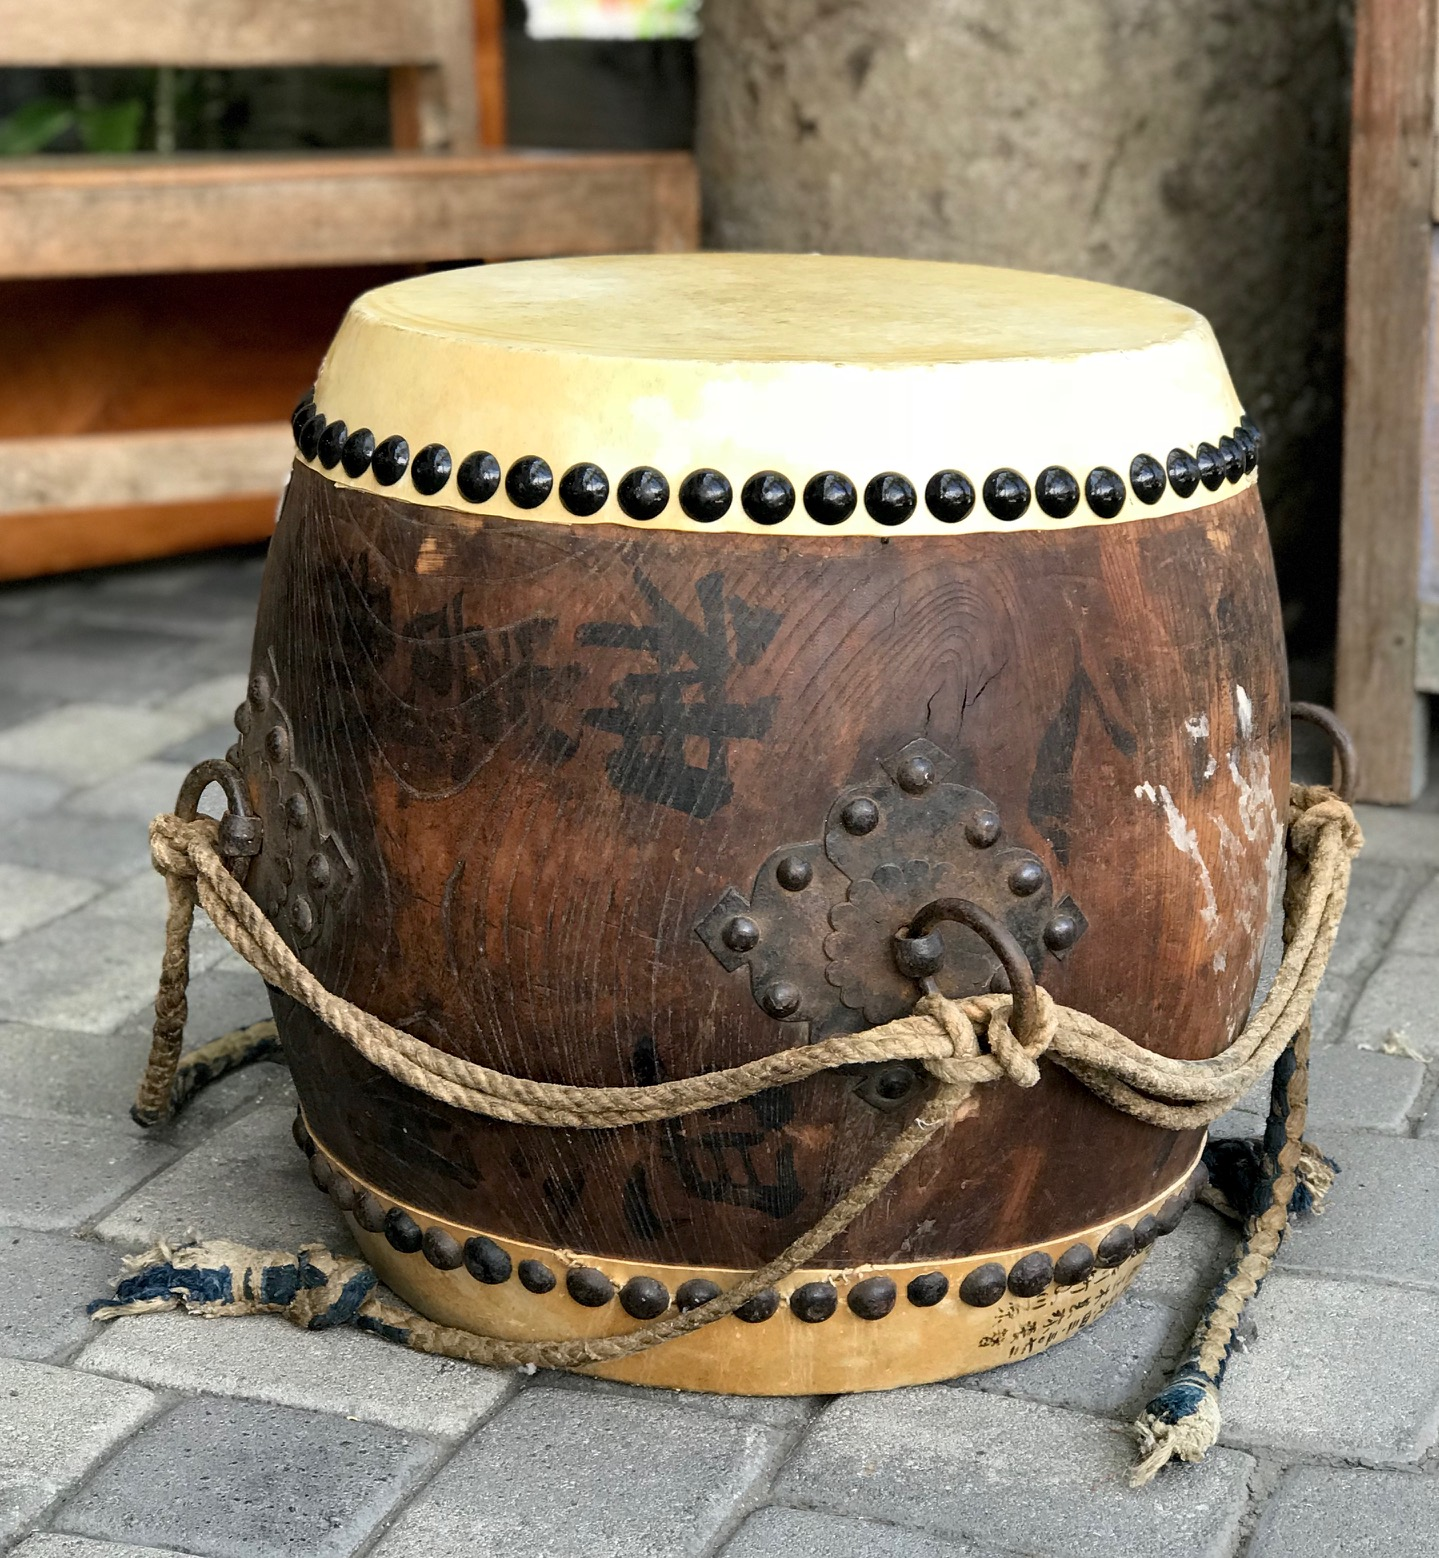 "Japanese Taiko Style (tacked down) Drum, Japan, 19th c Edo Period, (new head skin and tacks), wood, rawhide, rope, iron rings and tacks, ink/paint, 20"" x 24"", $1200.; thedavidalancollection.com , solana beach, ca"